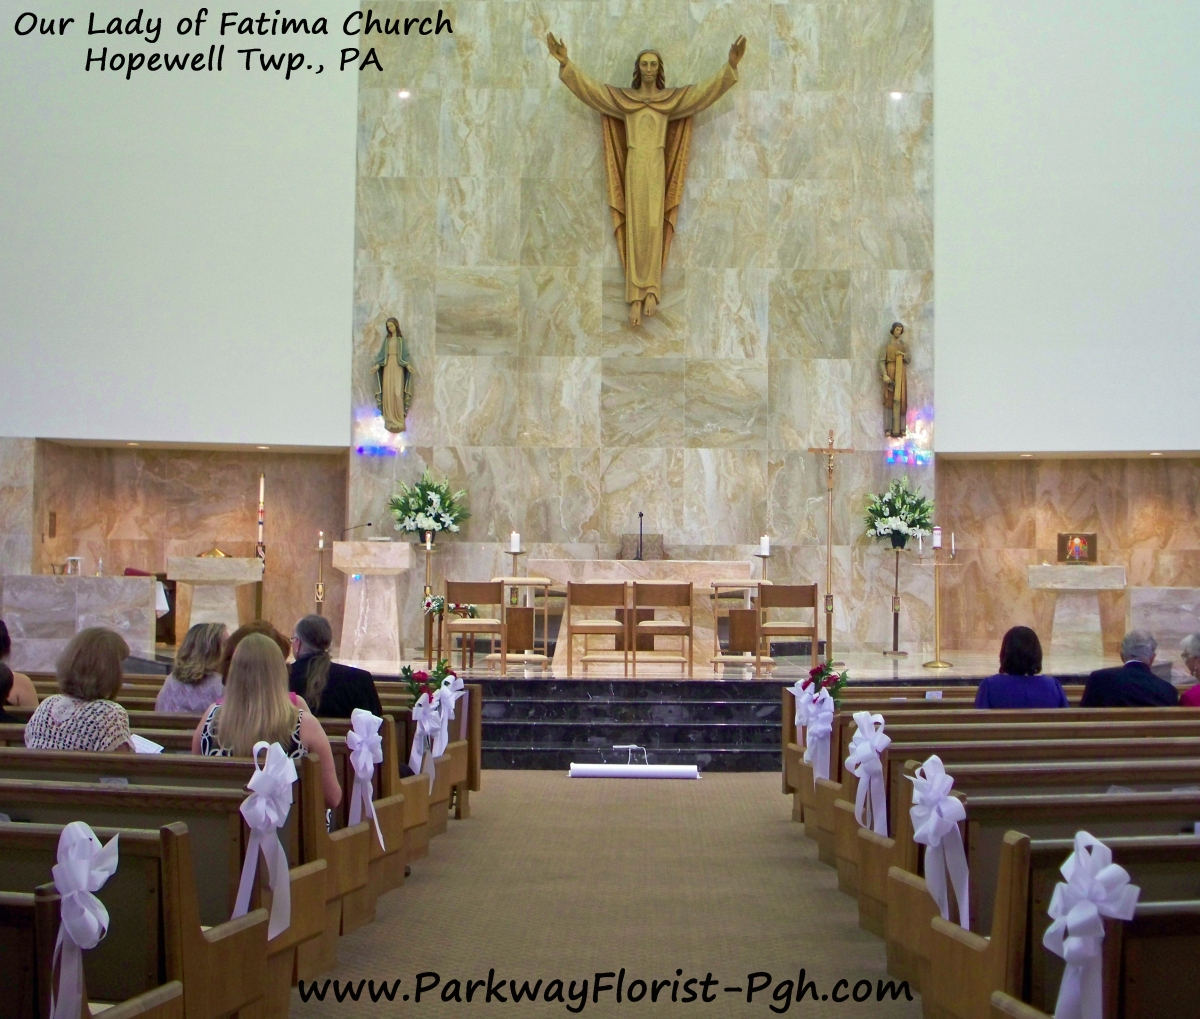 Our Lady of Fatima church – Hopewell Twp, Pa | Parkway